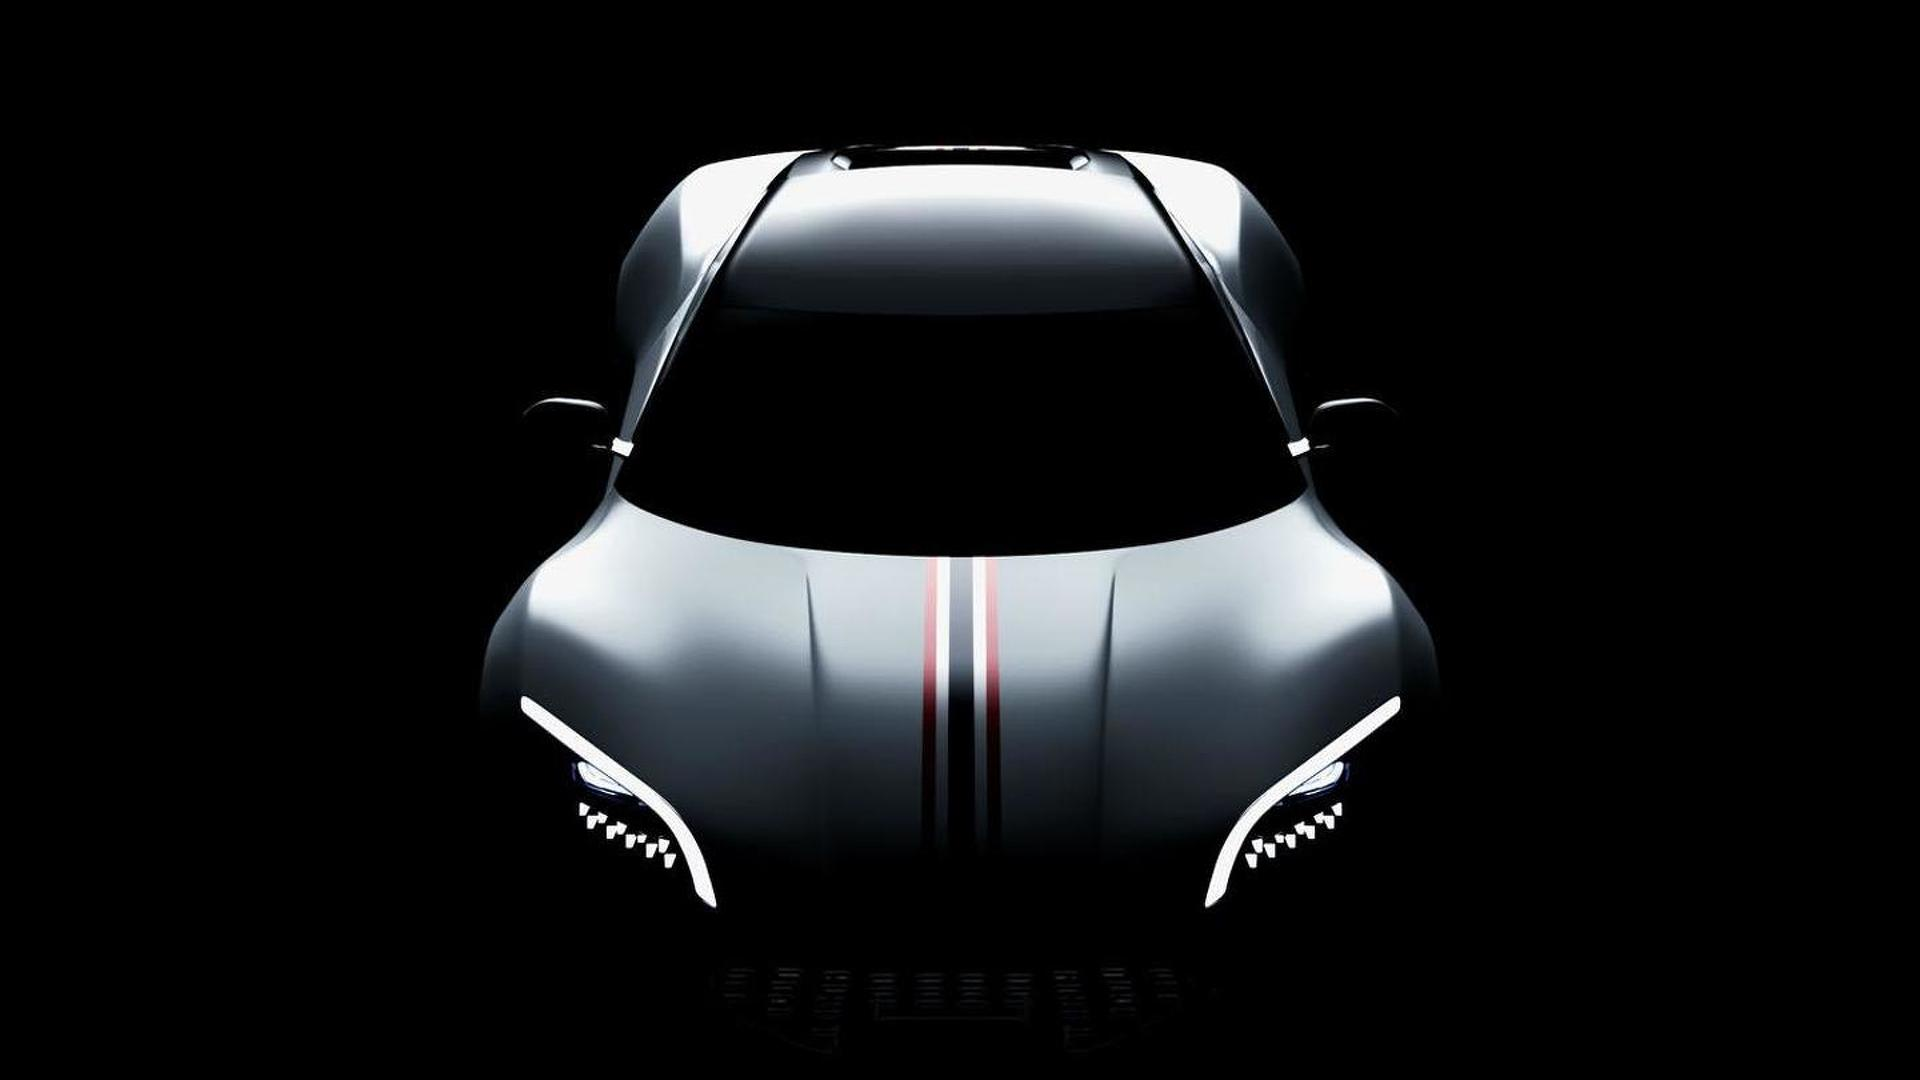 Thai sports car teased